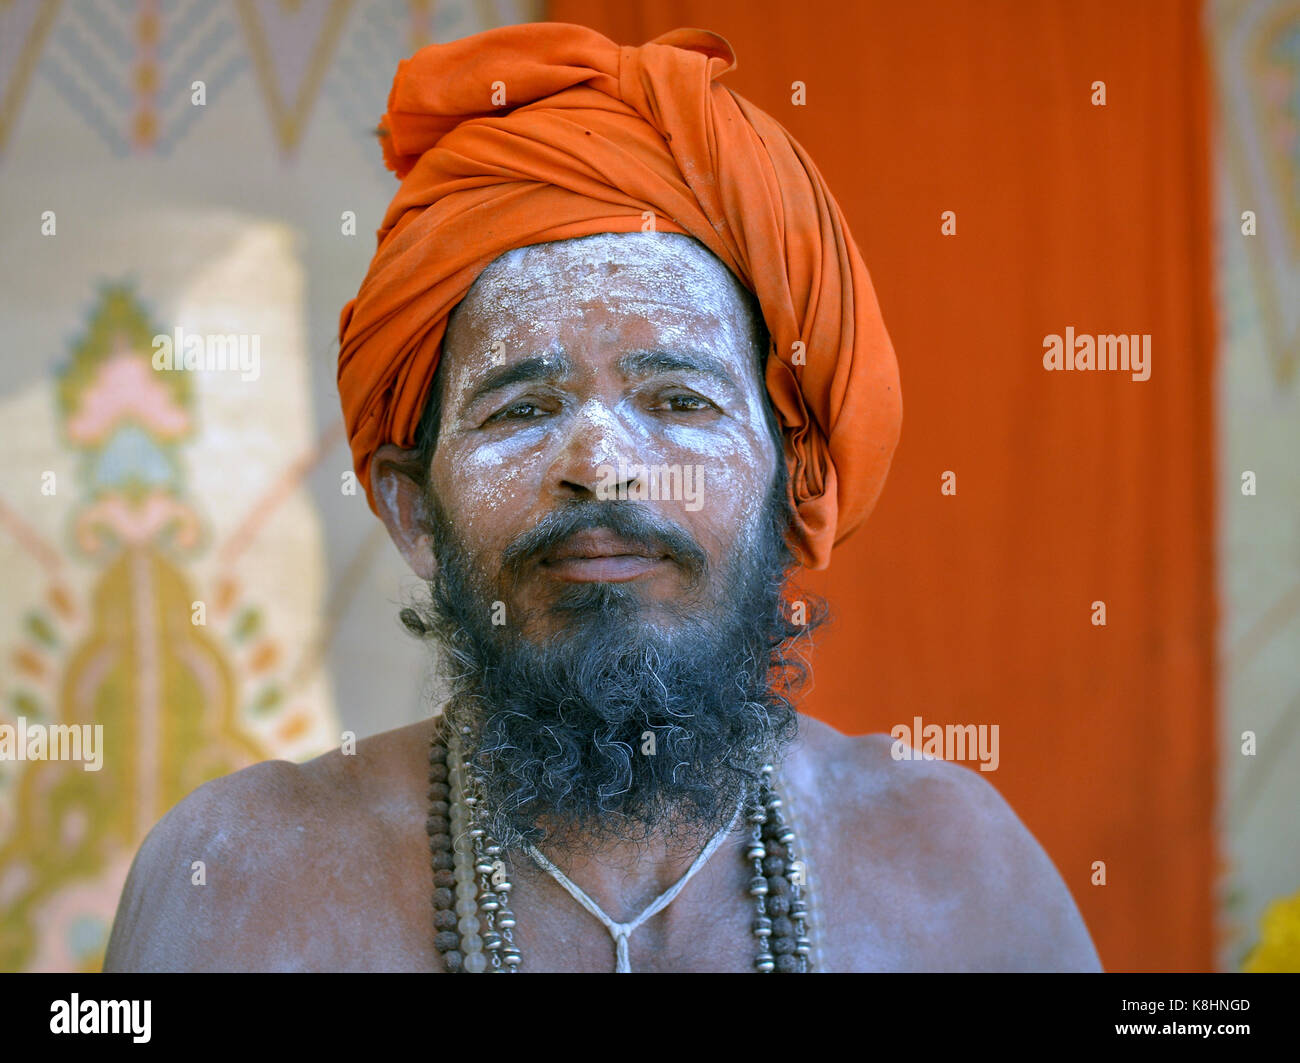 Young Indian Hindu sadhu with orange turban and sacred white ash (vibhuti) all over his face and beard - Stock Image